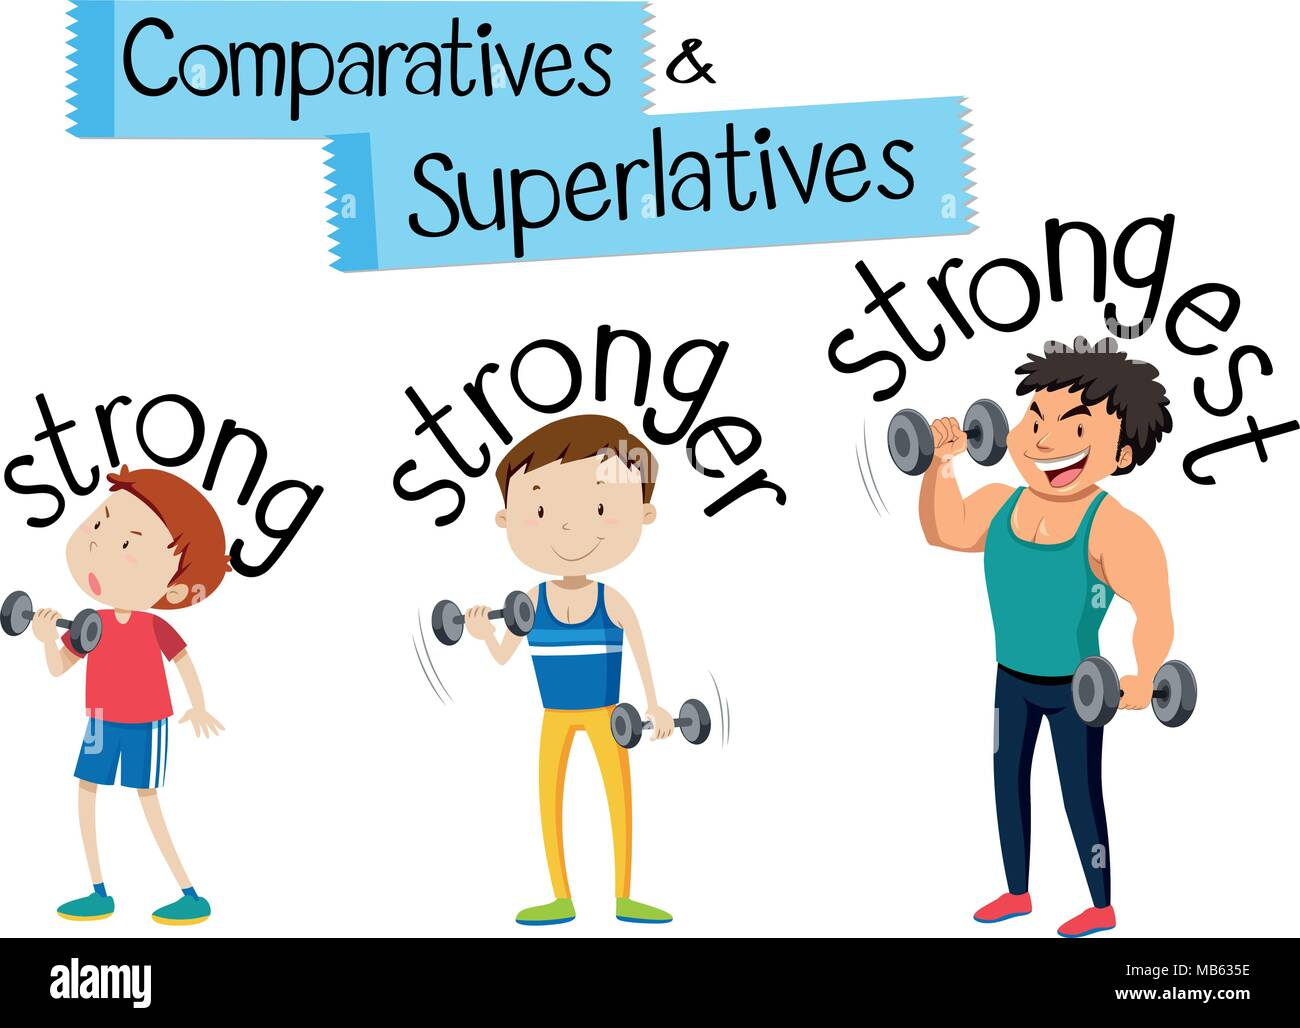 Comparatives And Superlatives Strong Illustration Stock